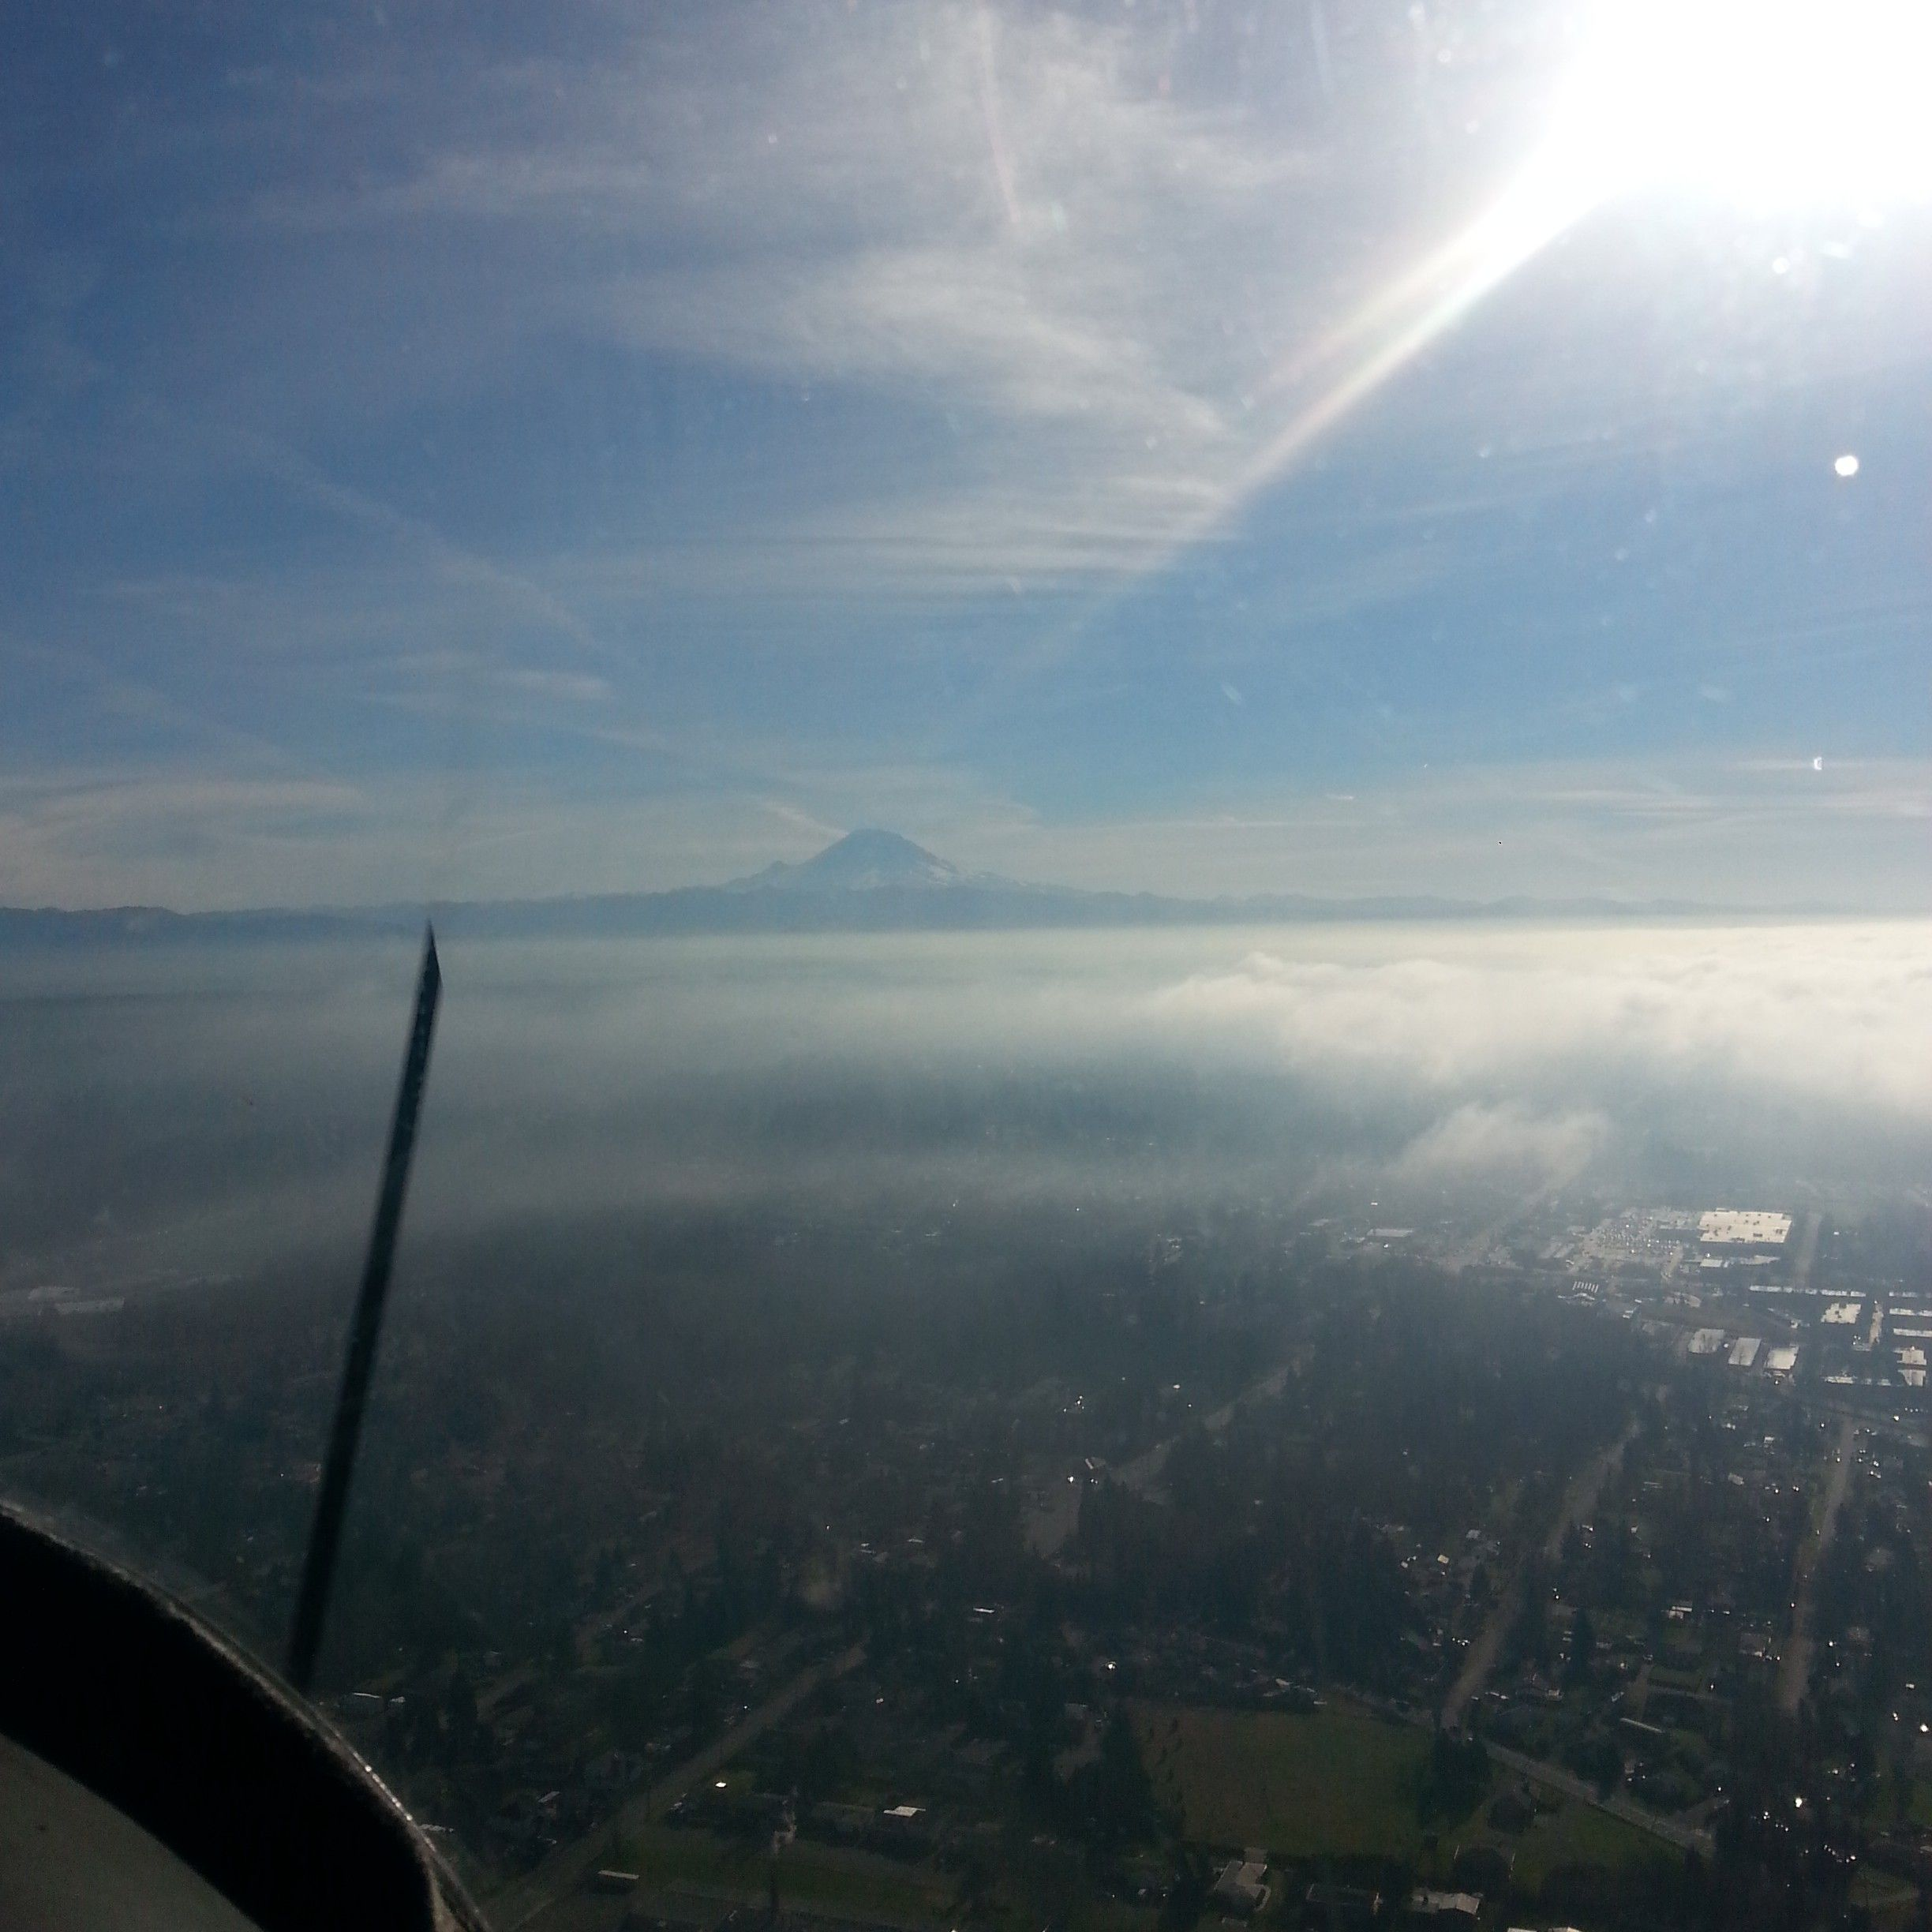 Heading towards Maple Valley on a great day flying! #Winter #Flying #MapleValley